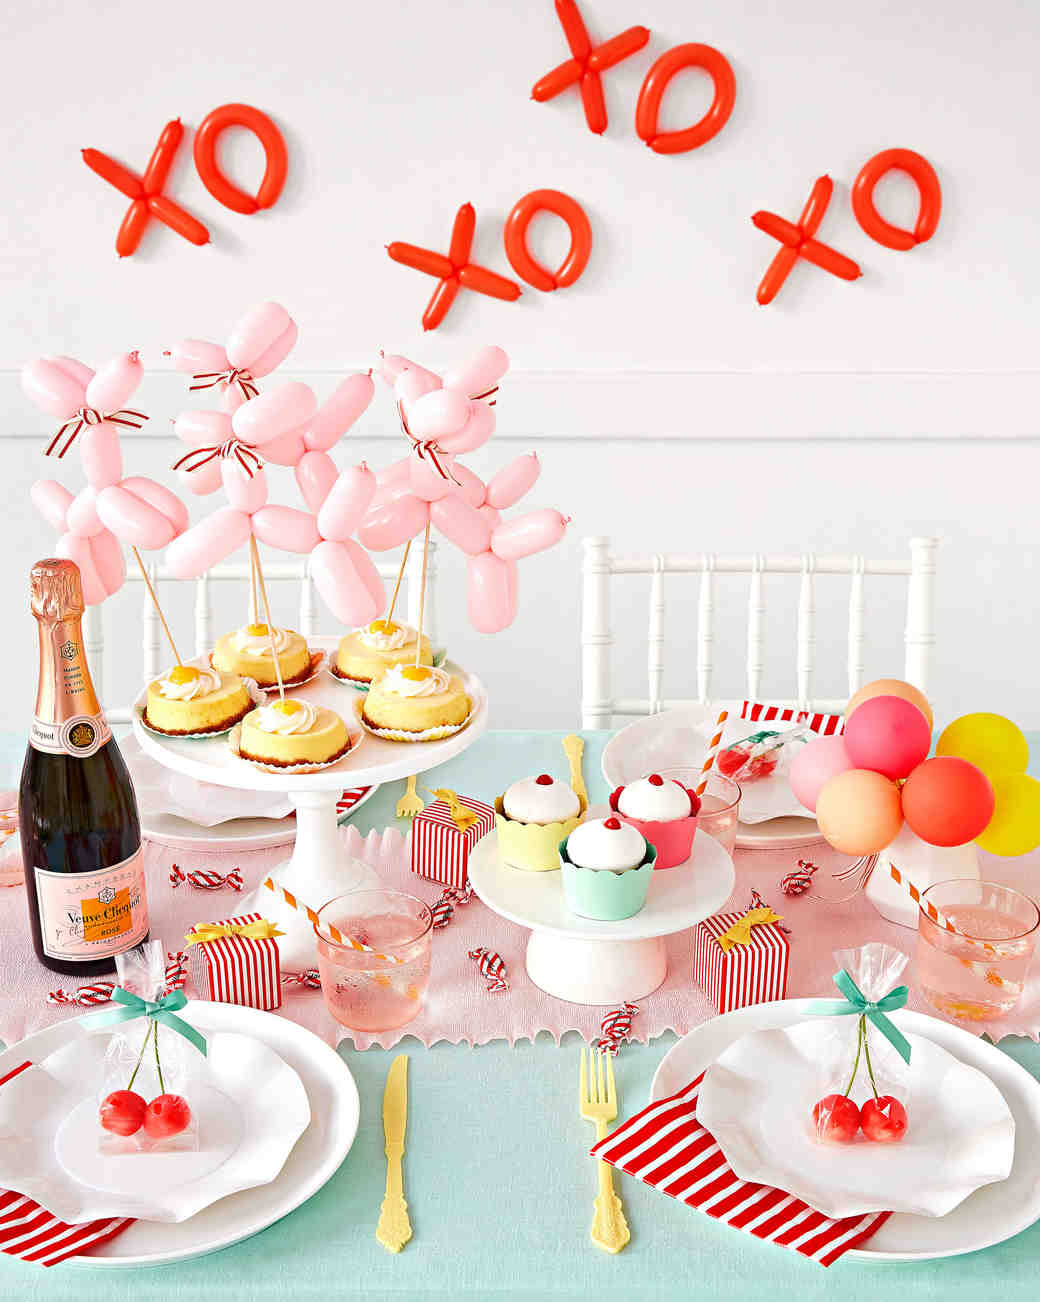 37 Bridal Shower Themes That Are Truly OneofaKind Martha